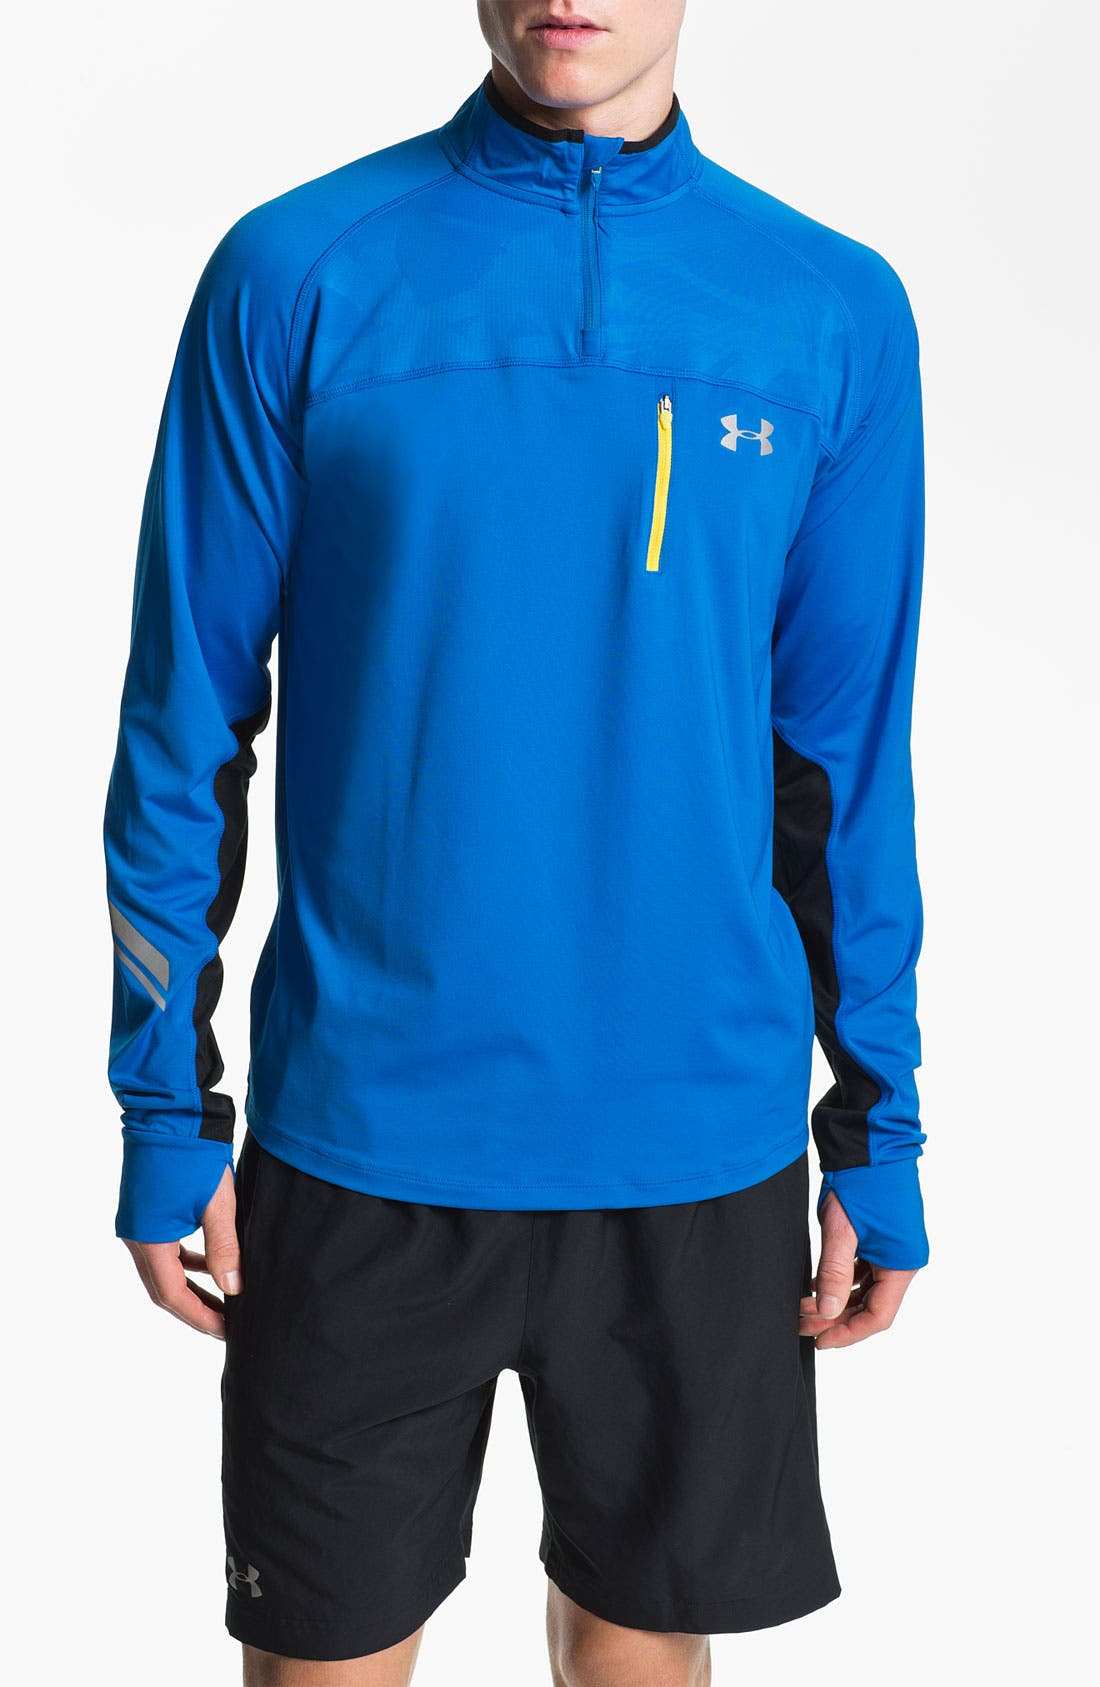 Alternate Image 1 Selected - Under Armour 'Imminent Run' Quarter Zip Pullover